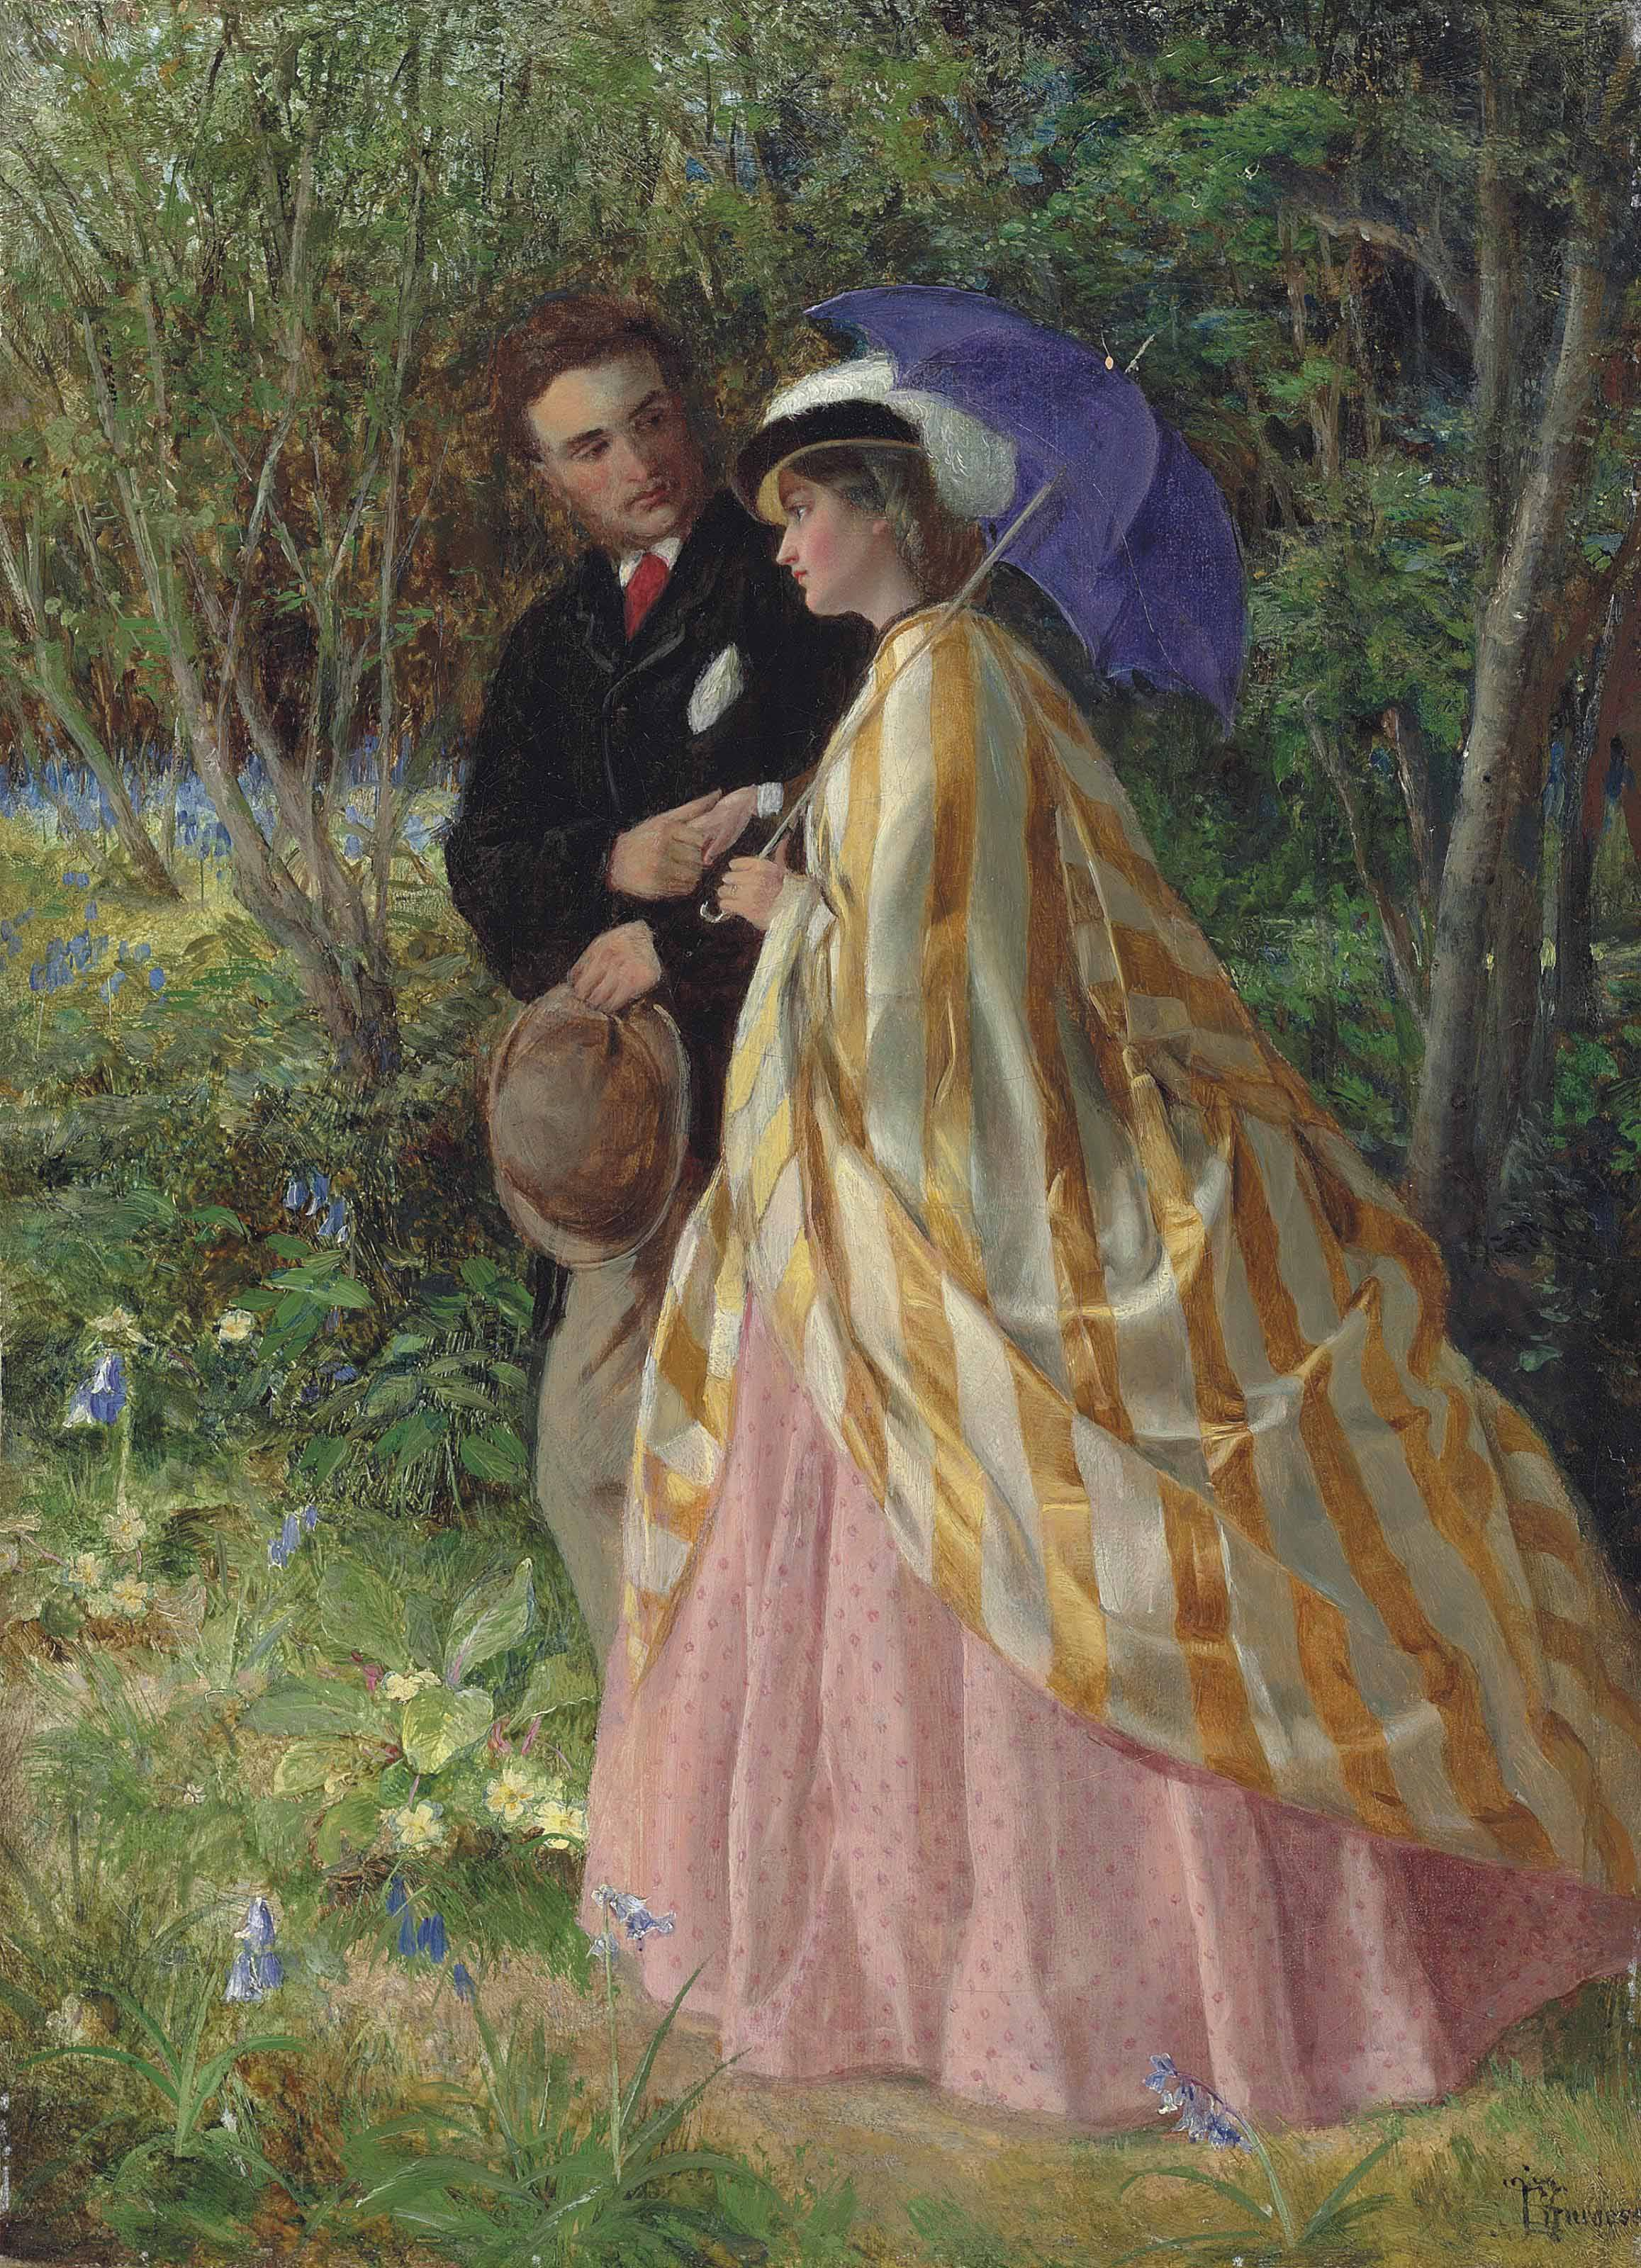 Lovers conversing in a bluebell wood